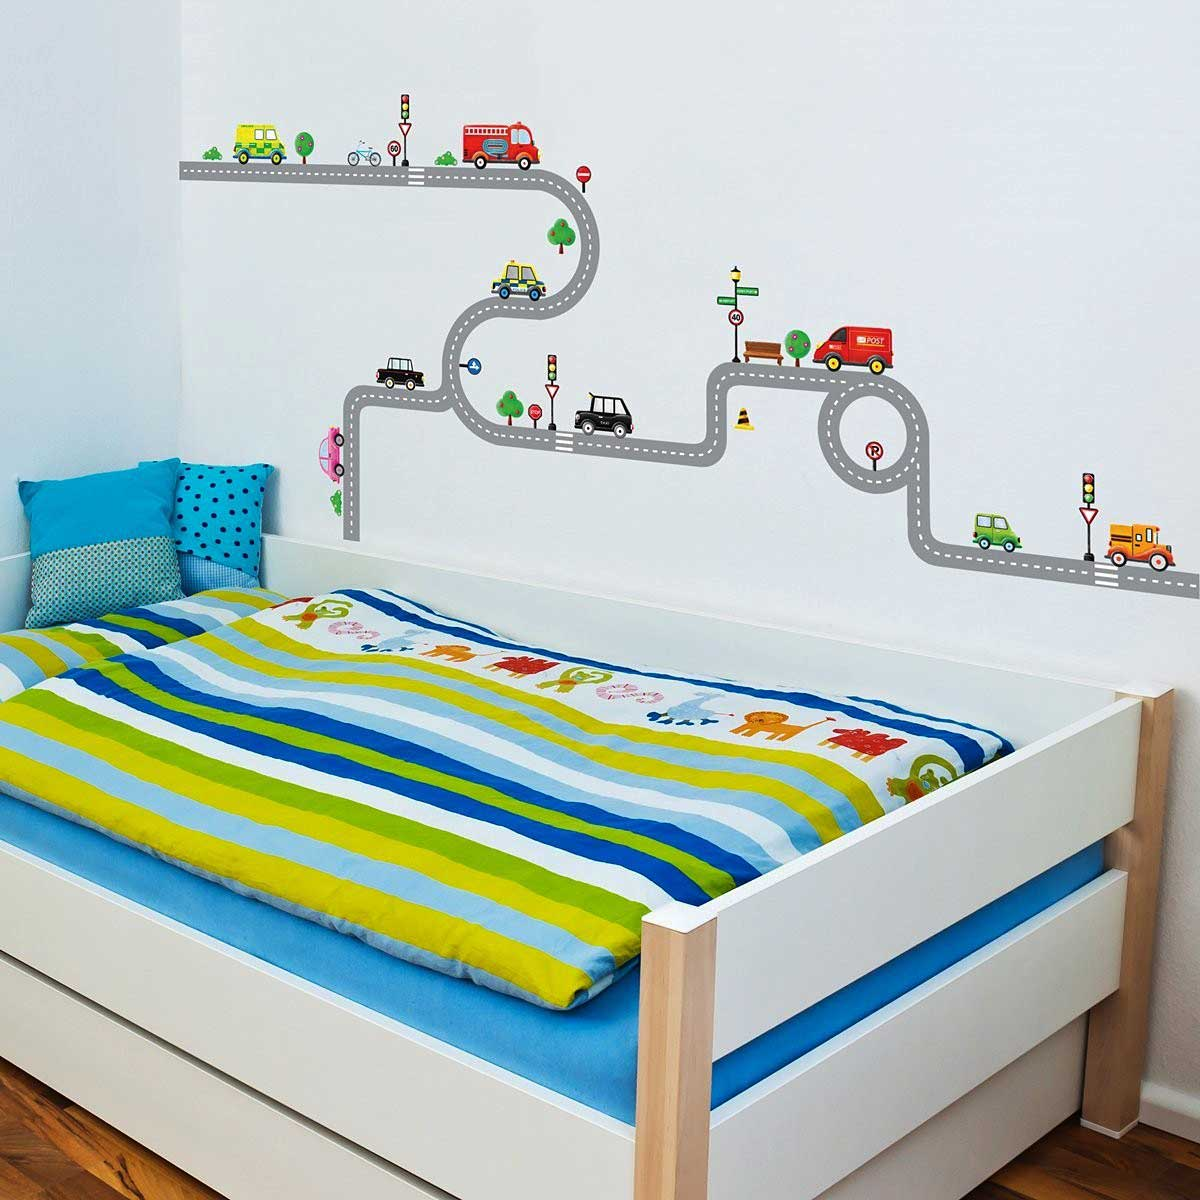 wandsticker wandpuzzle wandtattoo autobahn stra en autos. Black Bedroom Furniture Sets. Home Design Ideas